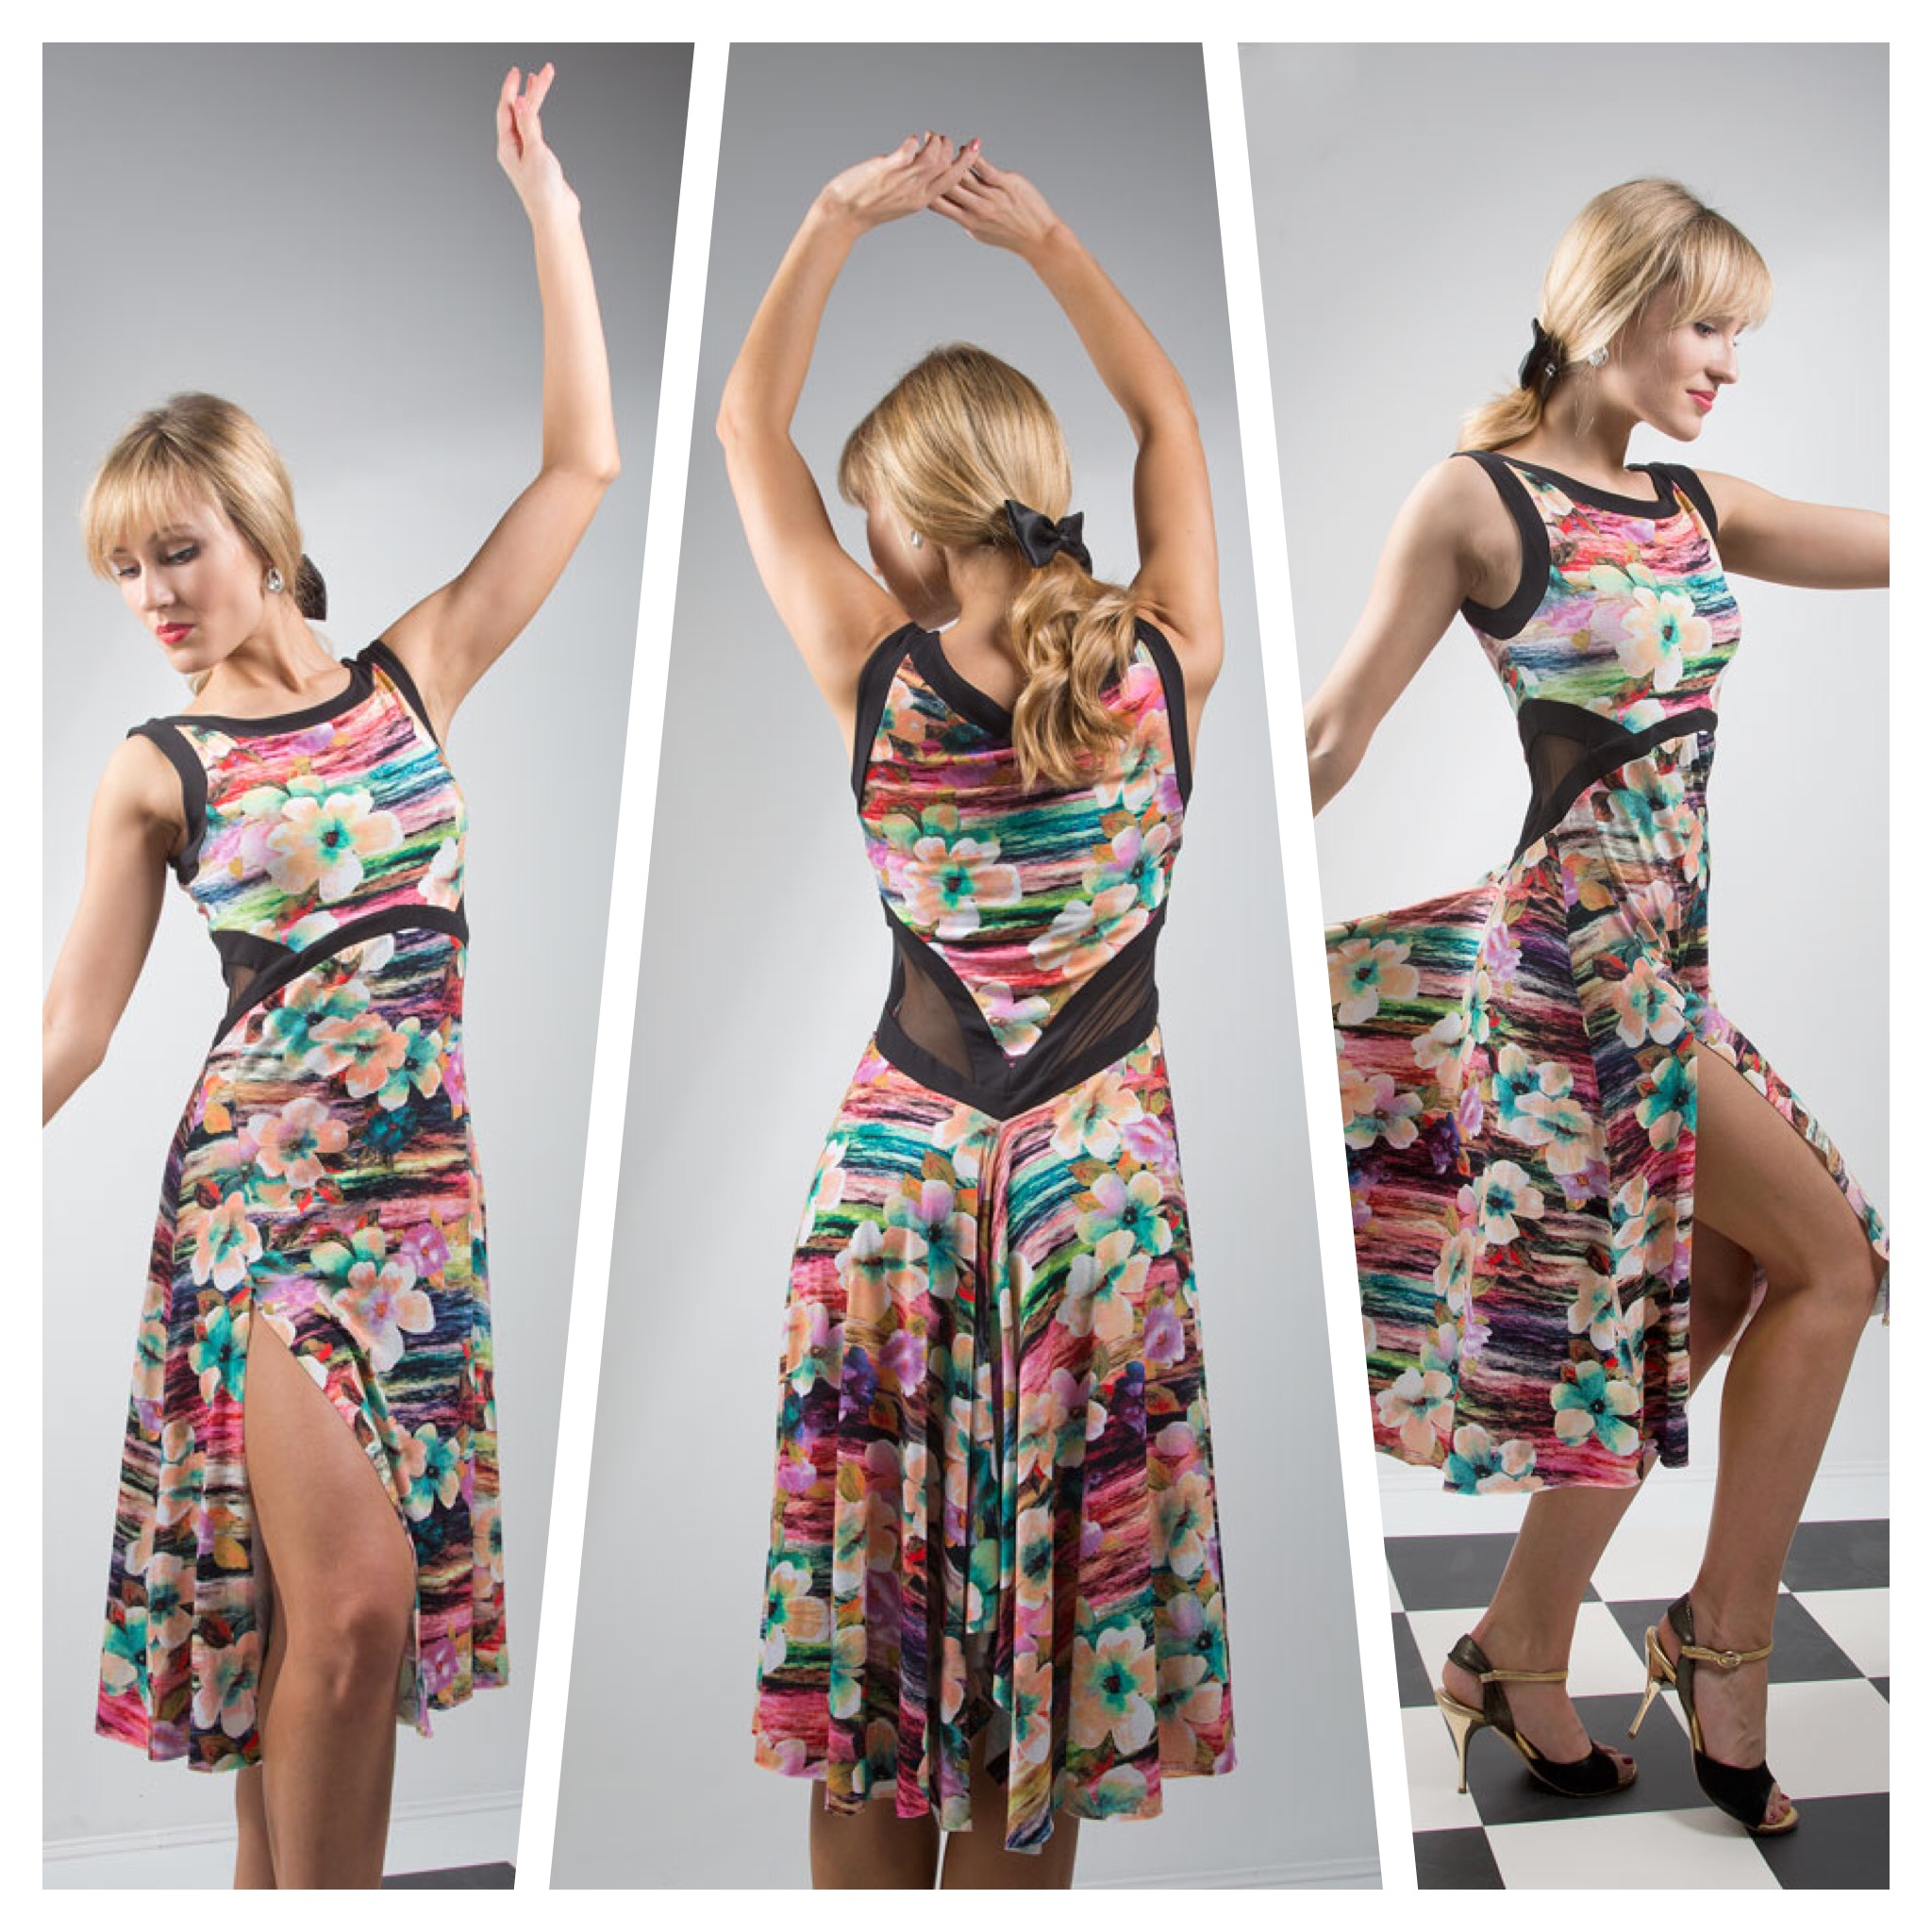 Capri tango dress in 100% natural viscose